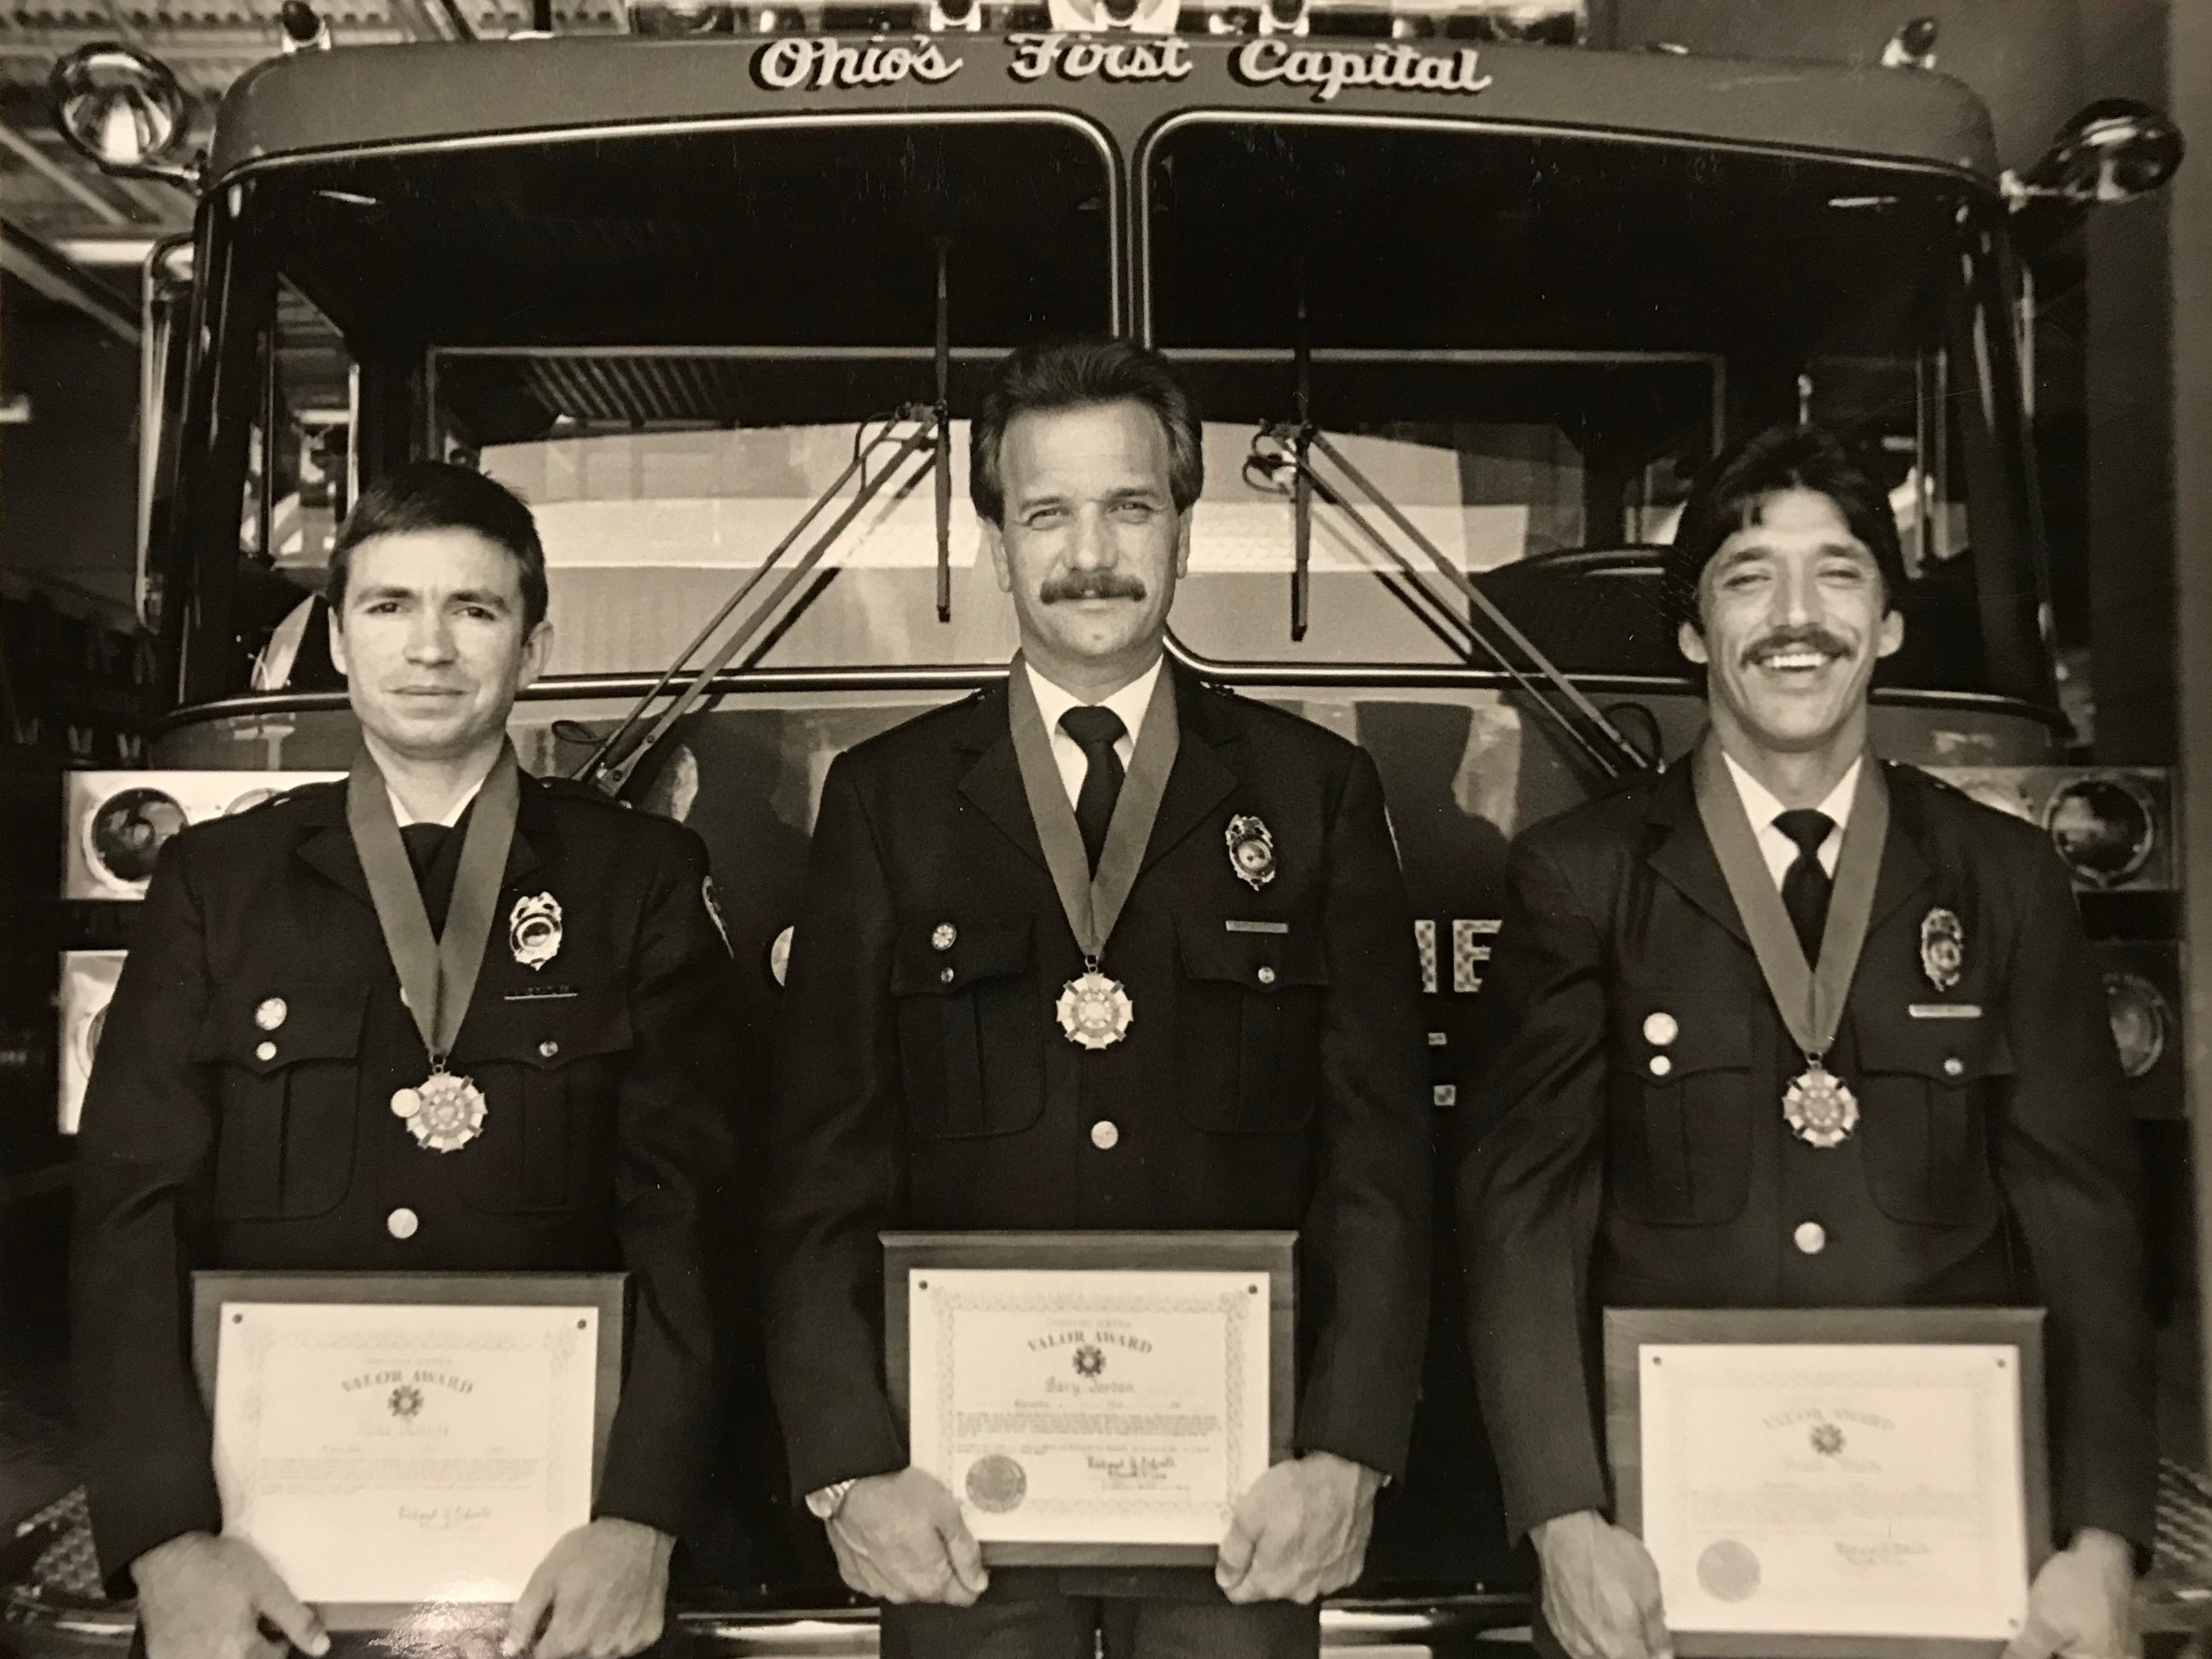 The State Fire Commission awarded, left-to-right, Mike Ratliff, Gary Jordan, and Frank Woods with the Valor Award for saving a woman and child trapped in a house fire earlier that year in January 1987.